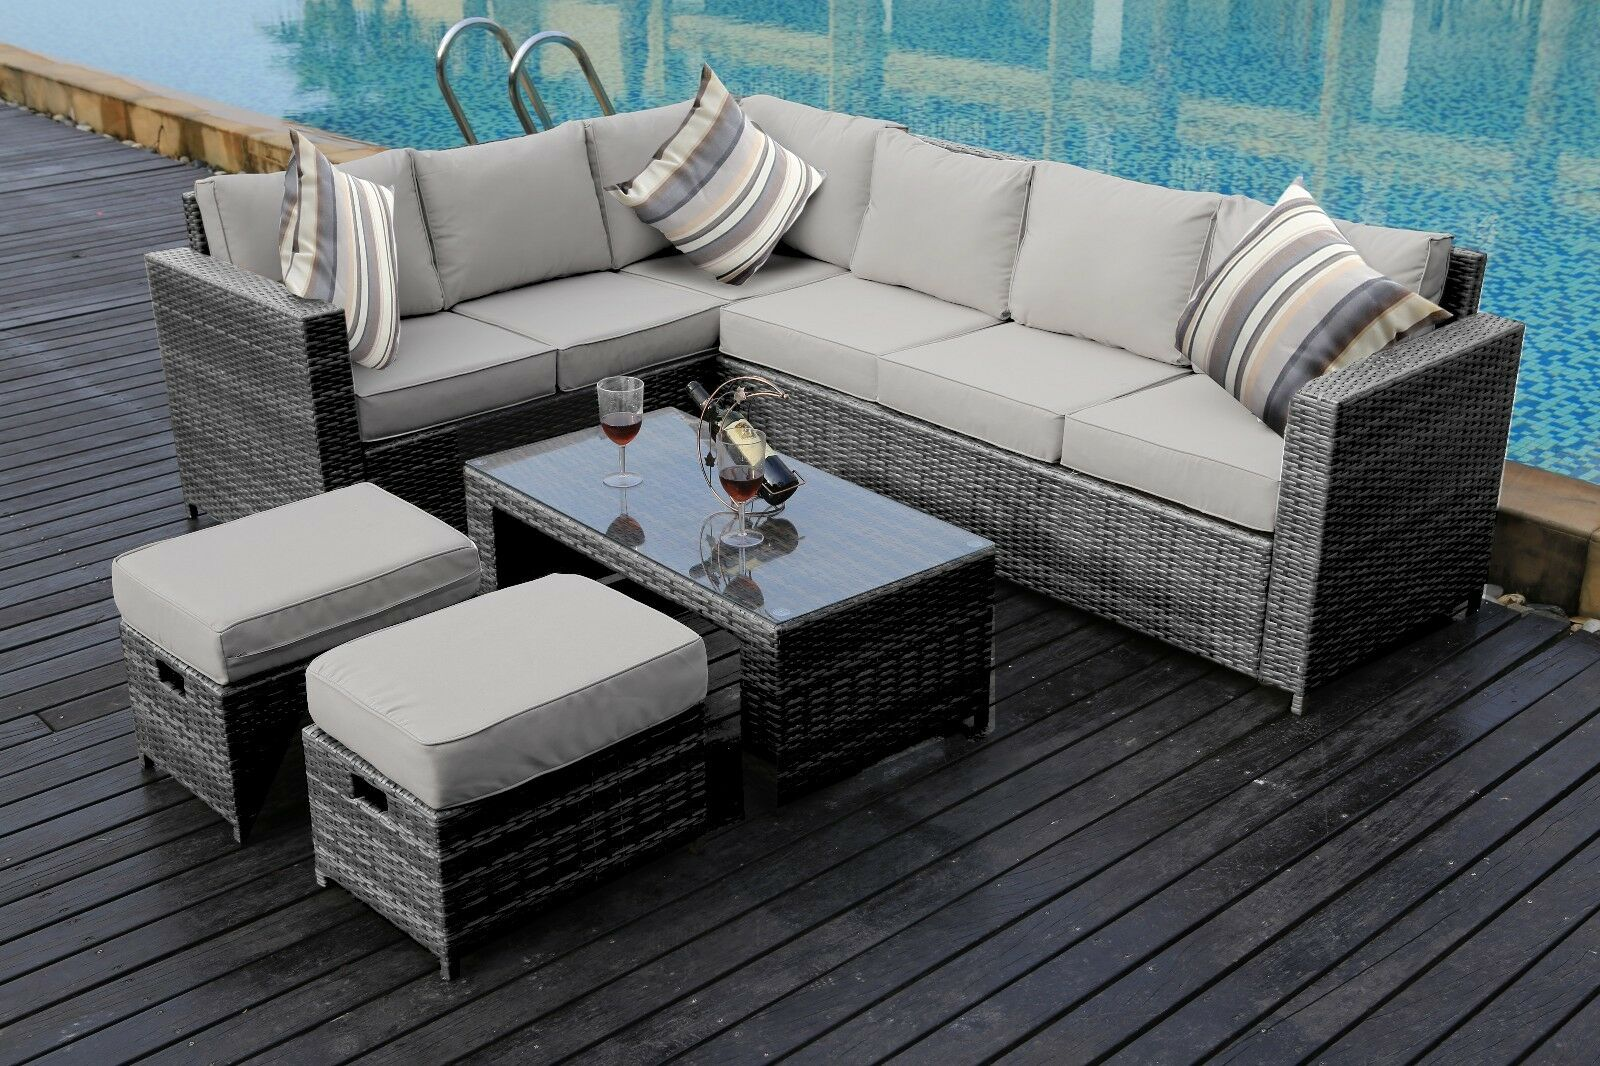 New conservatory modular 8 seater rattan corner sofa set for 9 seater sofa set